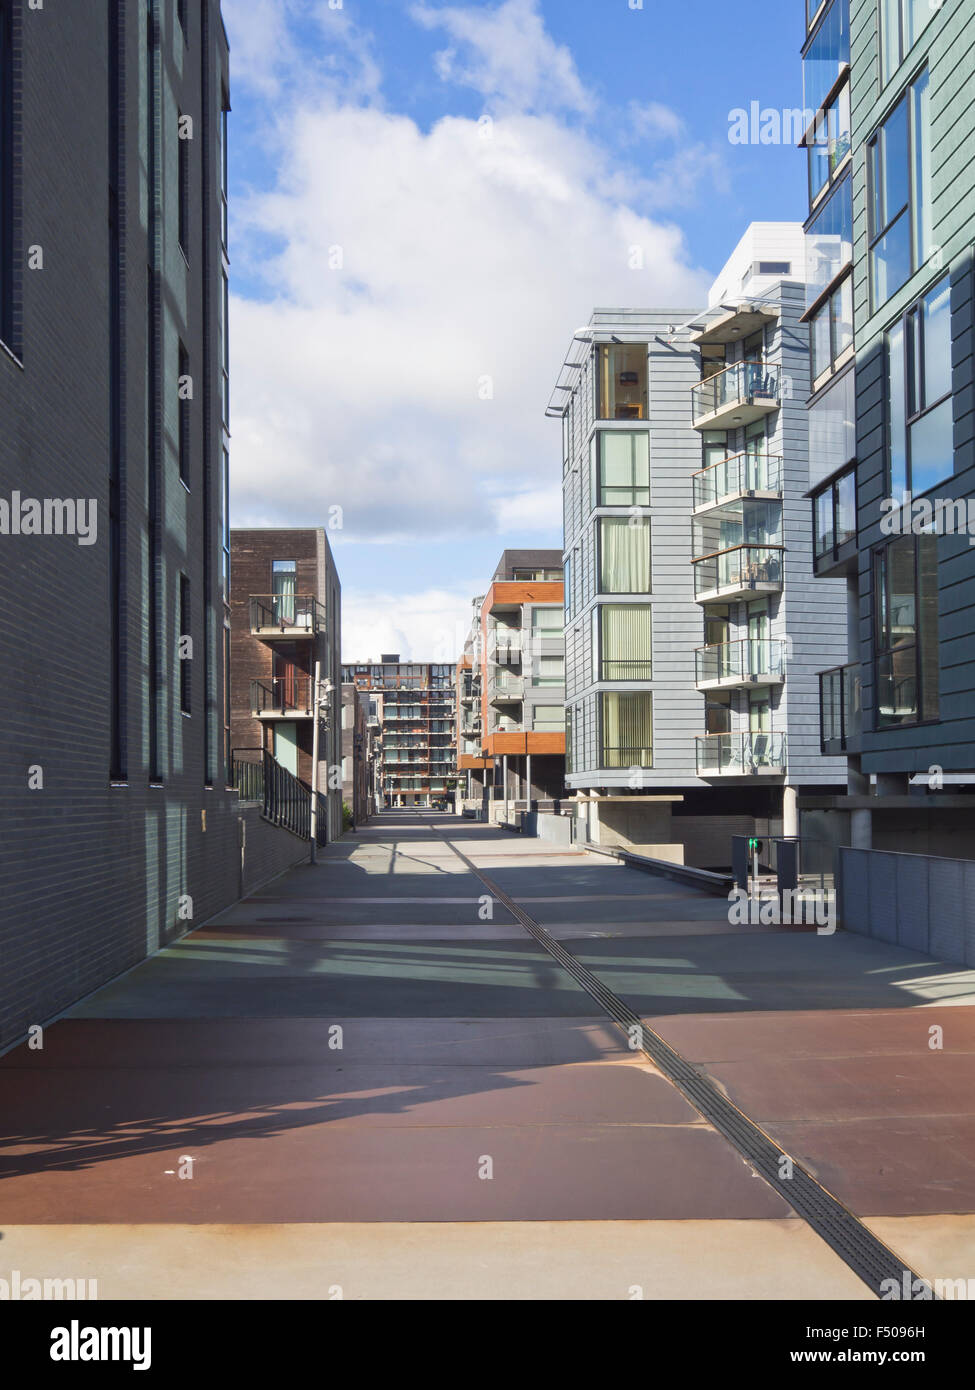 Jattavagen, Stavanger Norway, former industrial area now converted to modern living on the fjord Stock Photo